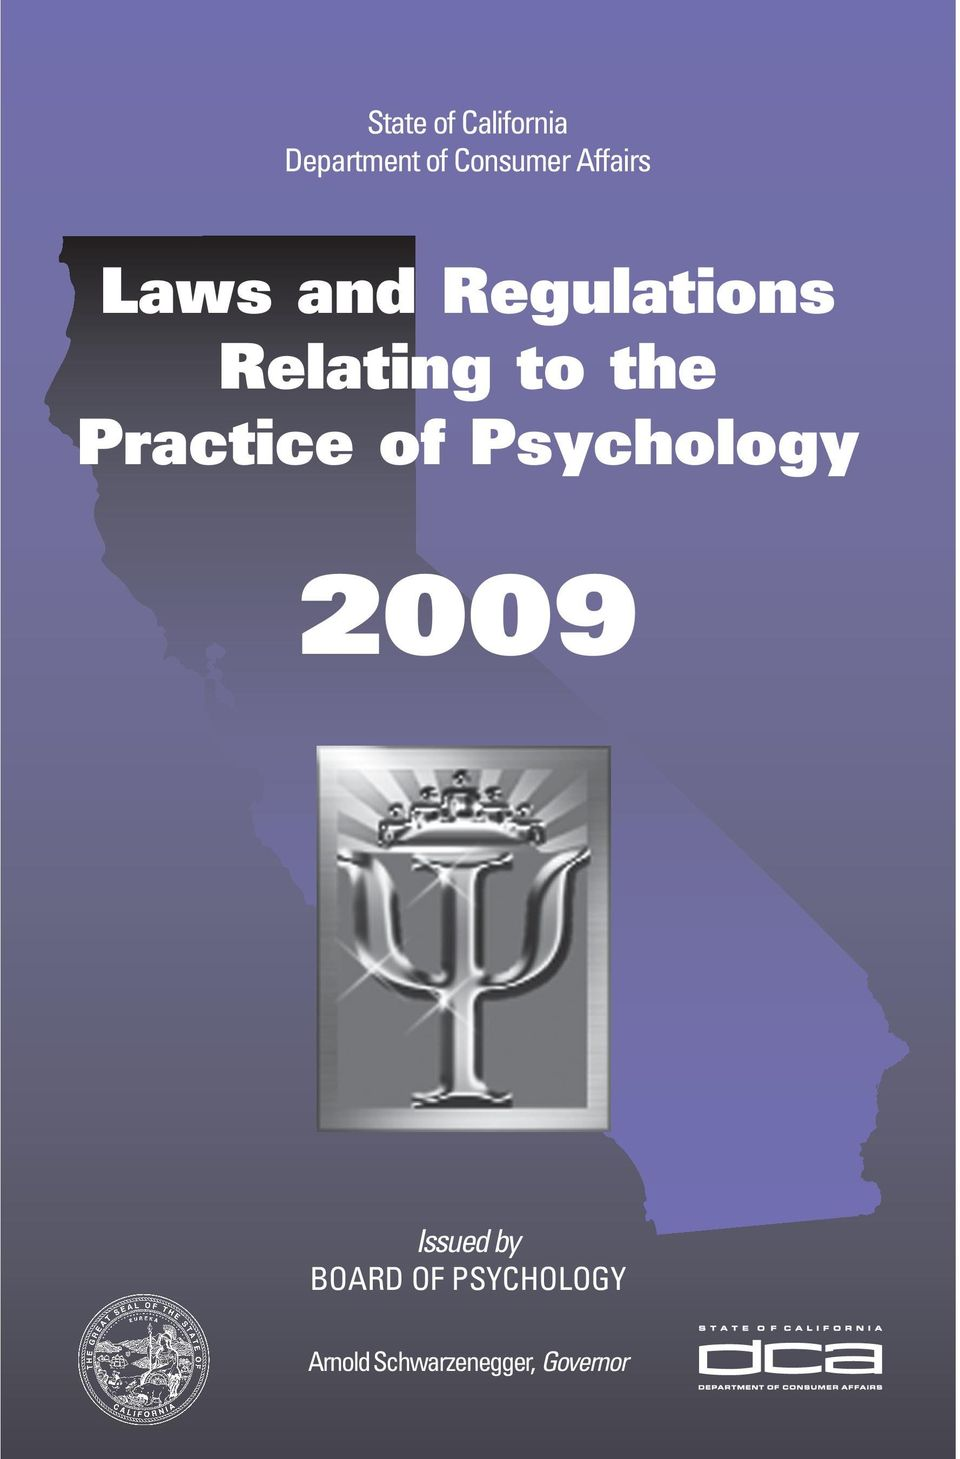 the Practice of Psychology 2009 Issued by